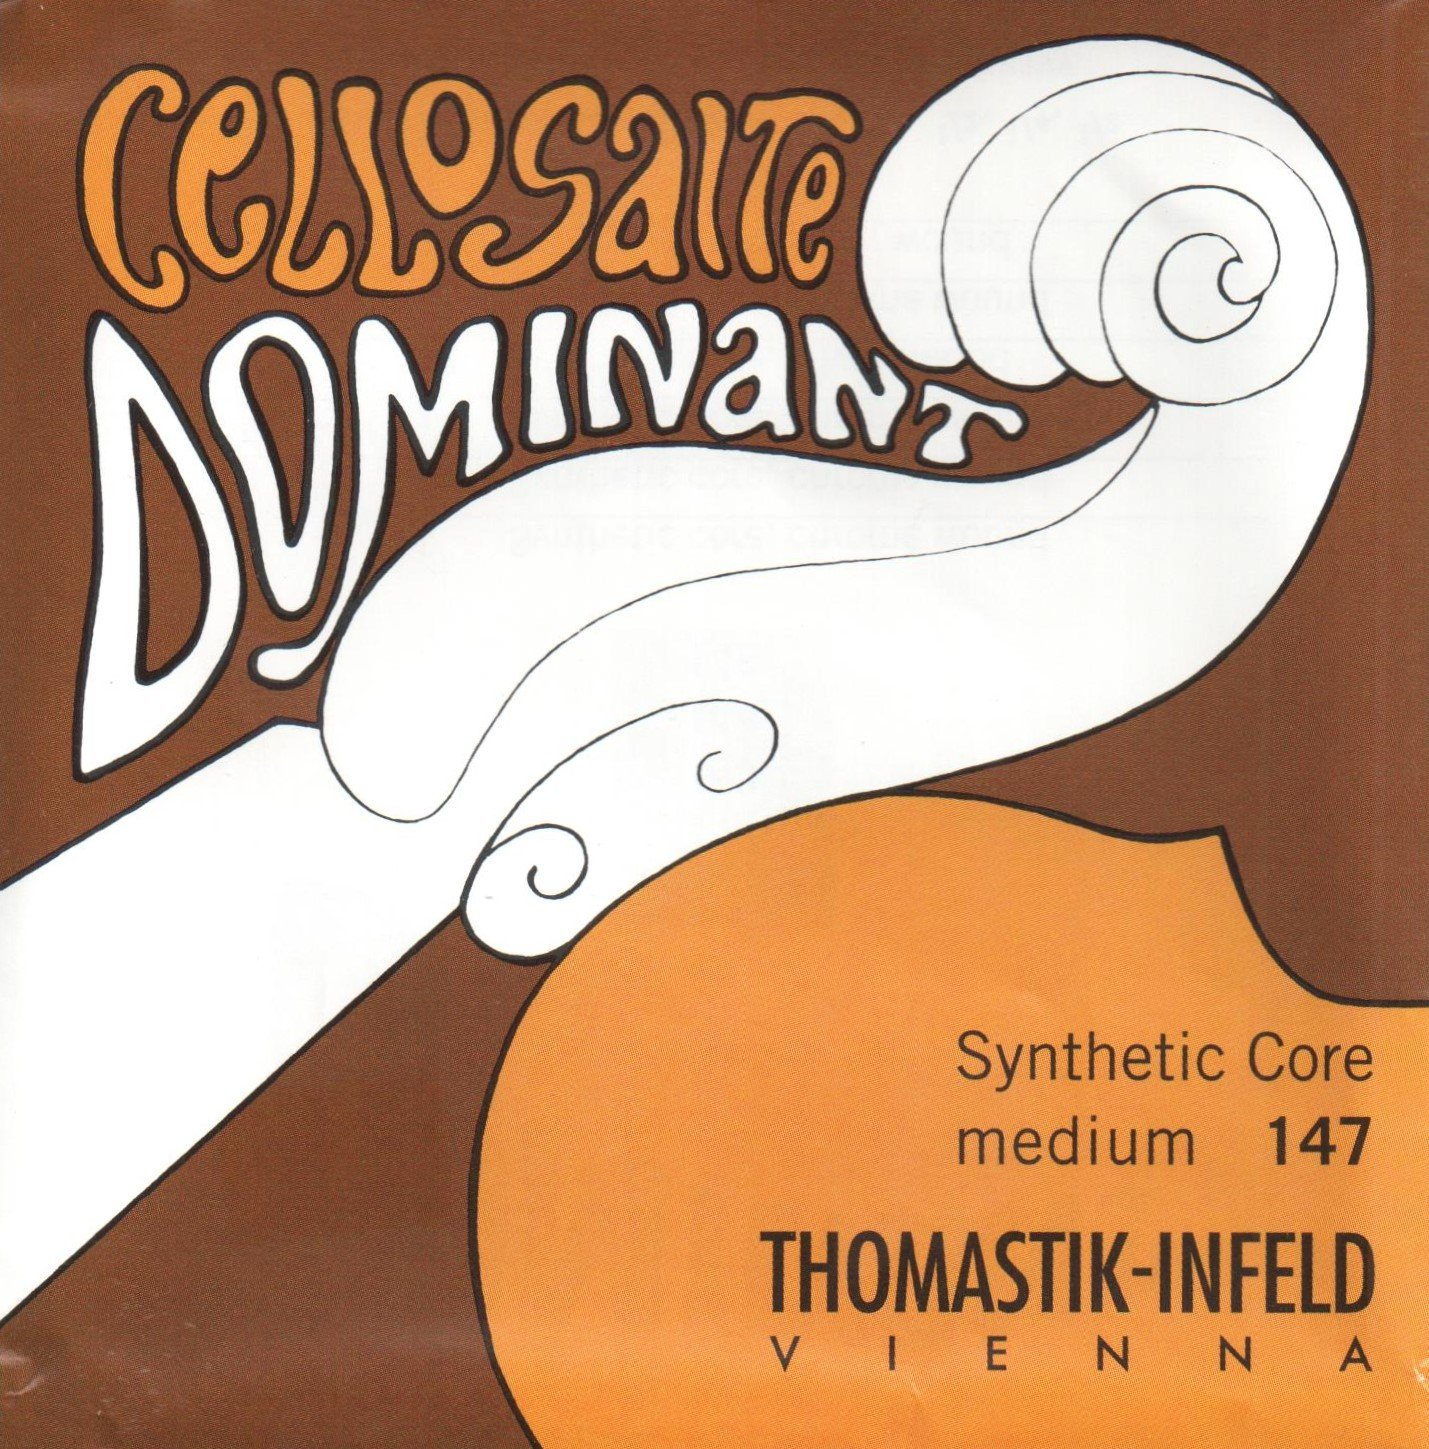 Thomastik-Infeld Dominant 147 Cello Strings, 4/4 Size, Medium, 142-145